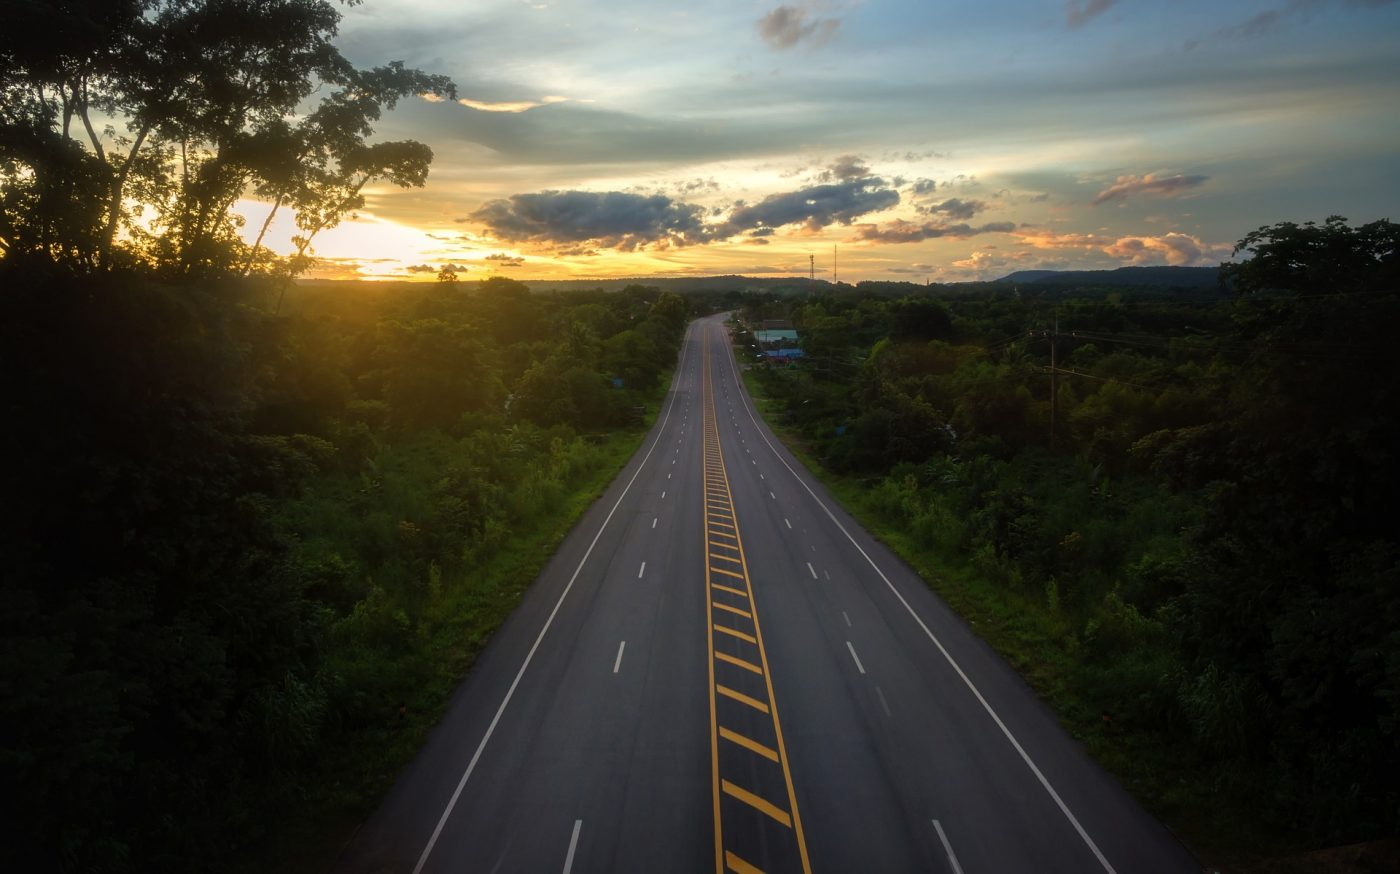 Minimalism: Living on the open road